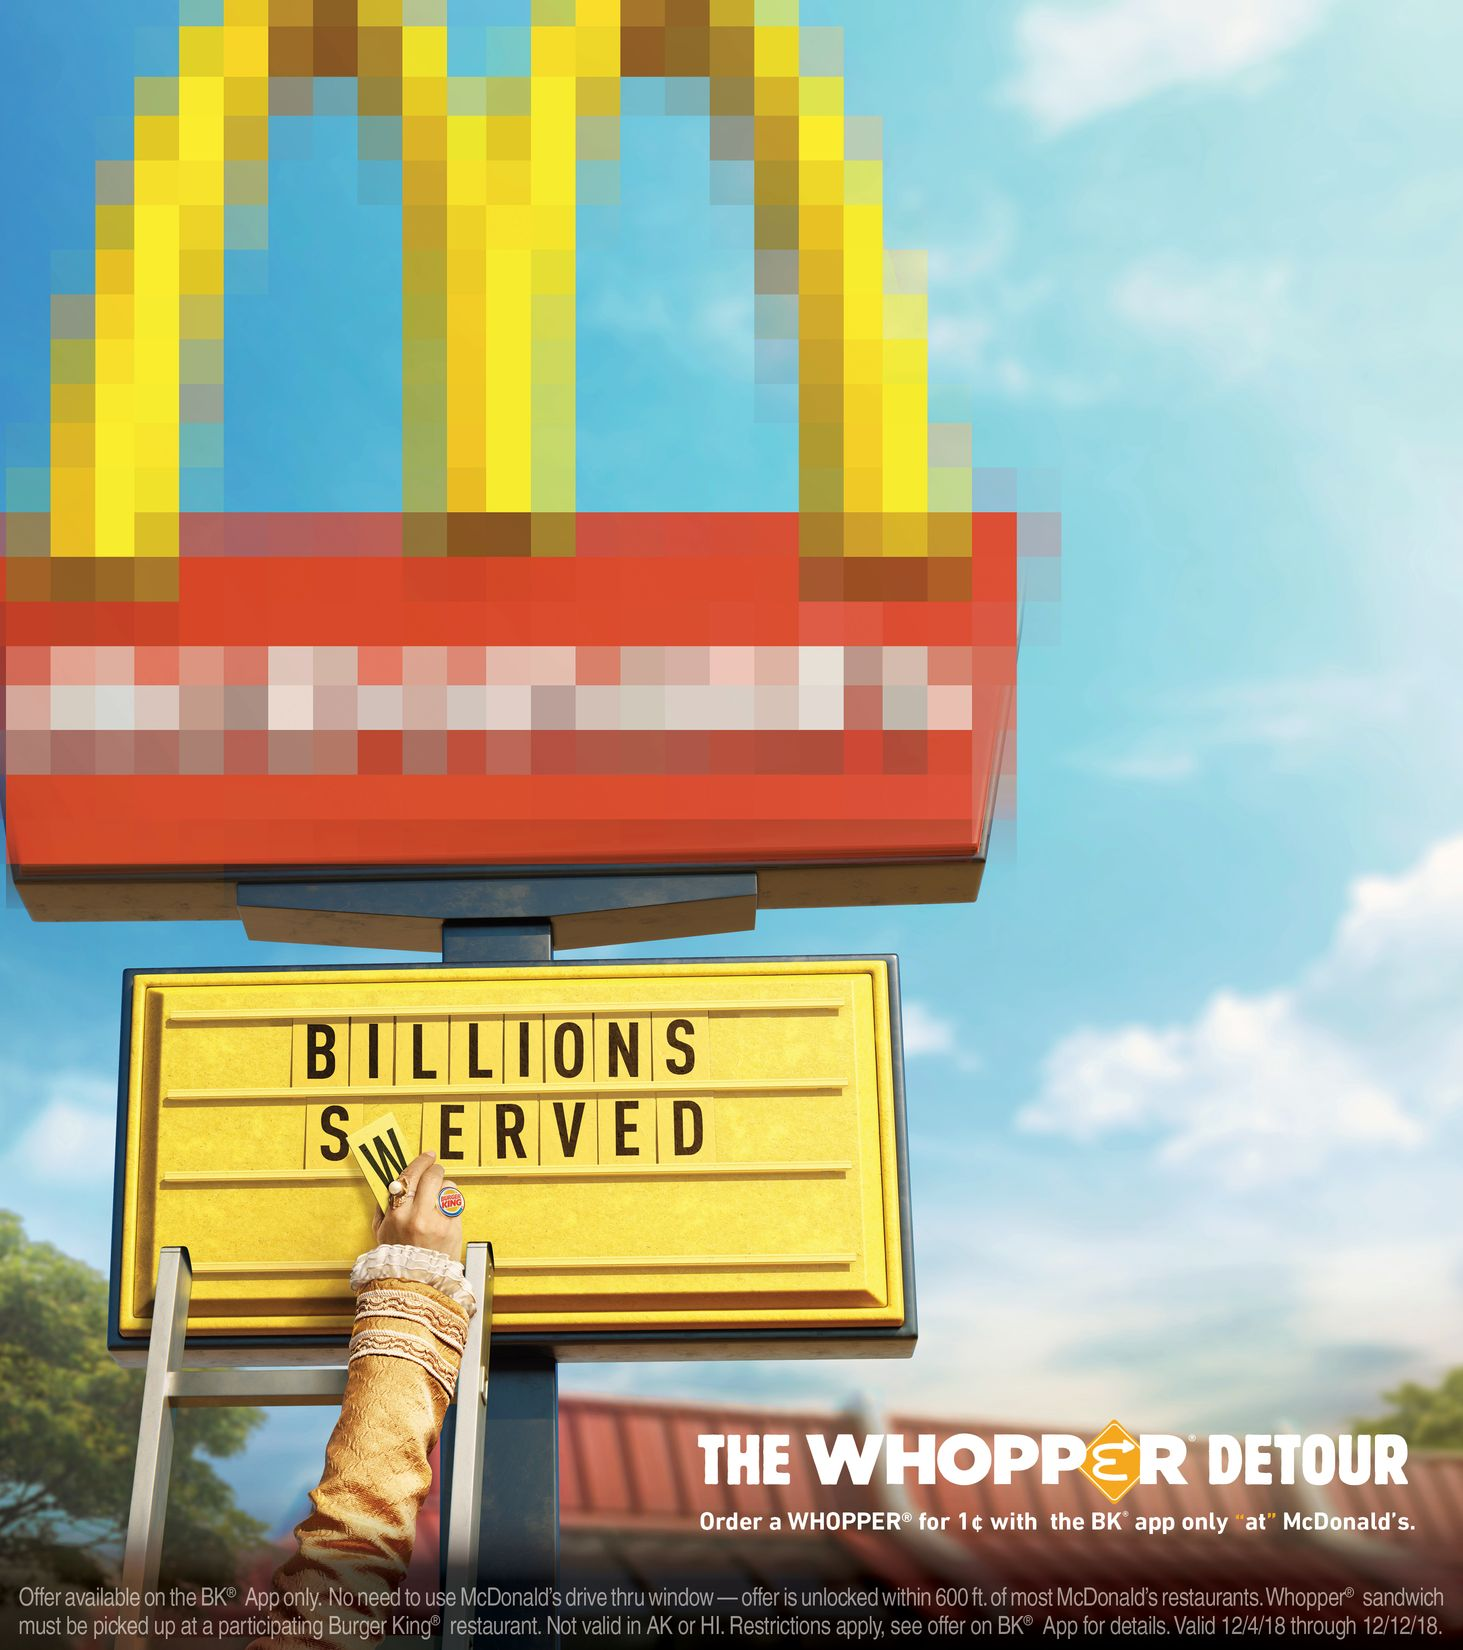 Burger King Whopper Detour - 1¢ Whopper